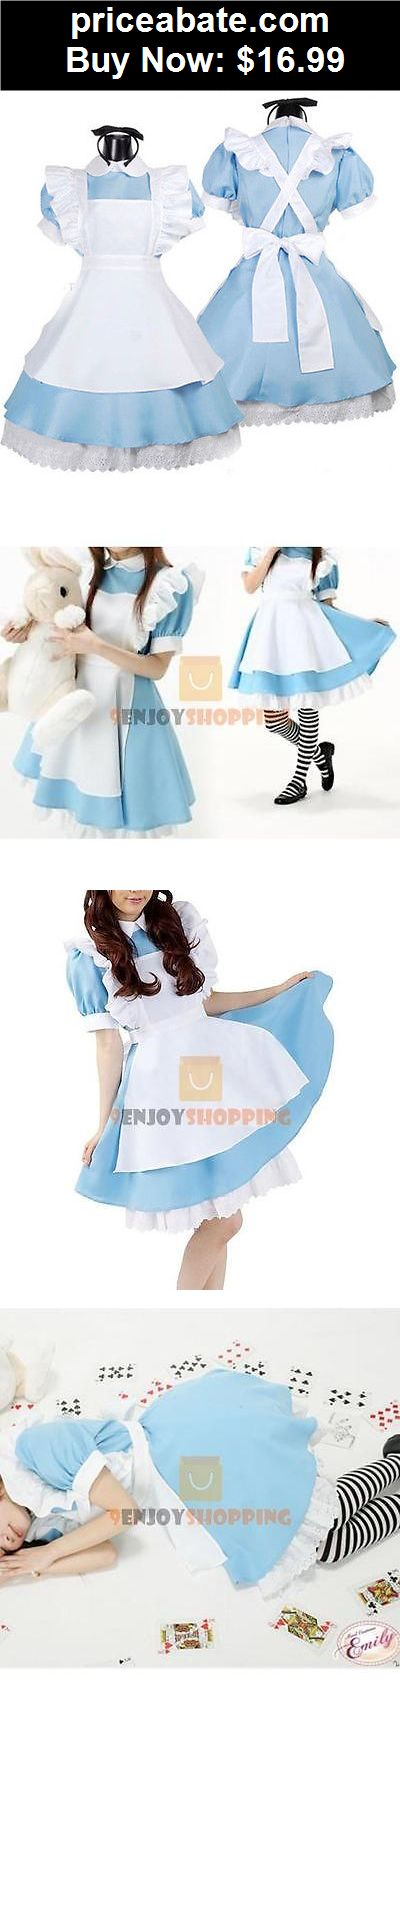 Women-Costumes: Halloween Maid Costume Alice In Wonderland Sexy Maids Outfit Fancy Dress Cosplay - BUY IT NOW ONLY $16.99